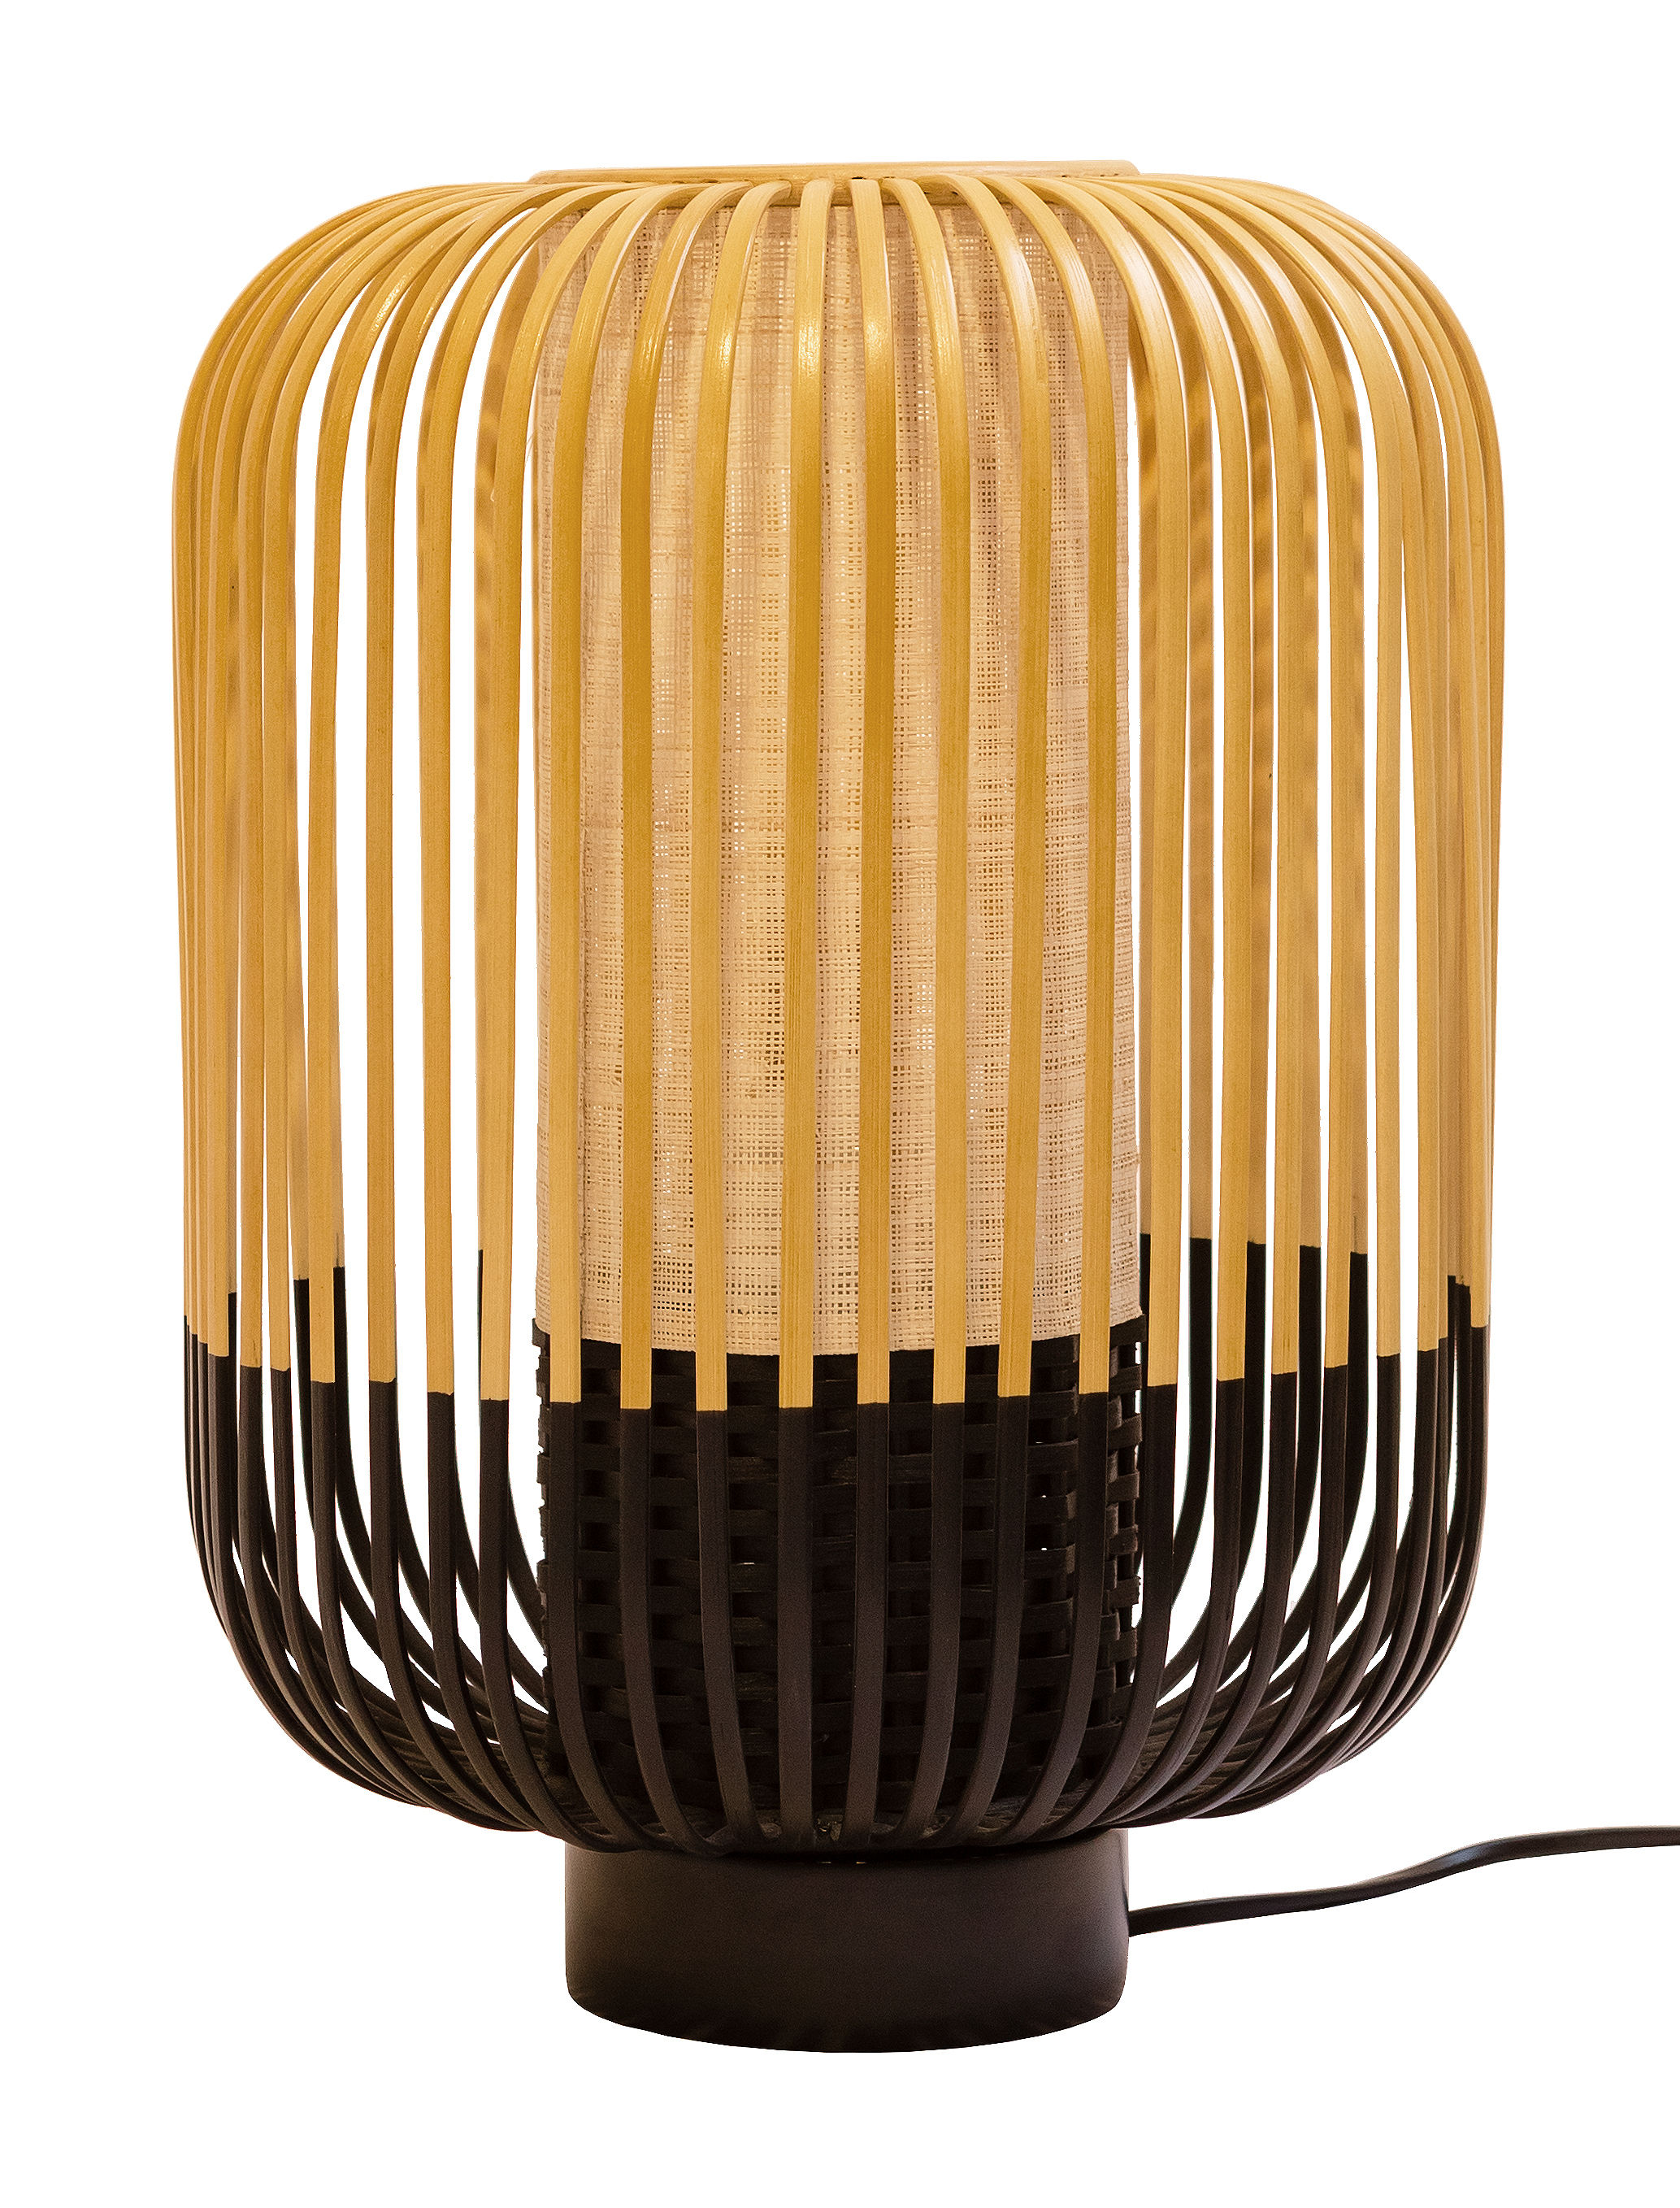 Lighting - Table Lamps - Bamboo Light Table lamp - H 39 x Ø 27 cm by Forestier - H 39 cm - Black - Natural bamboo